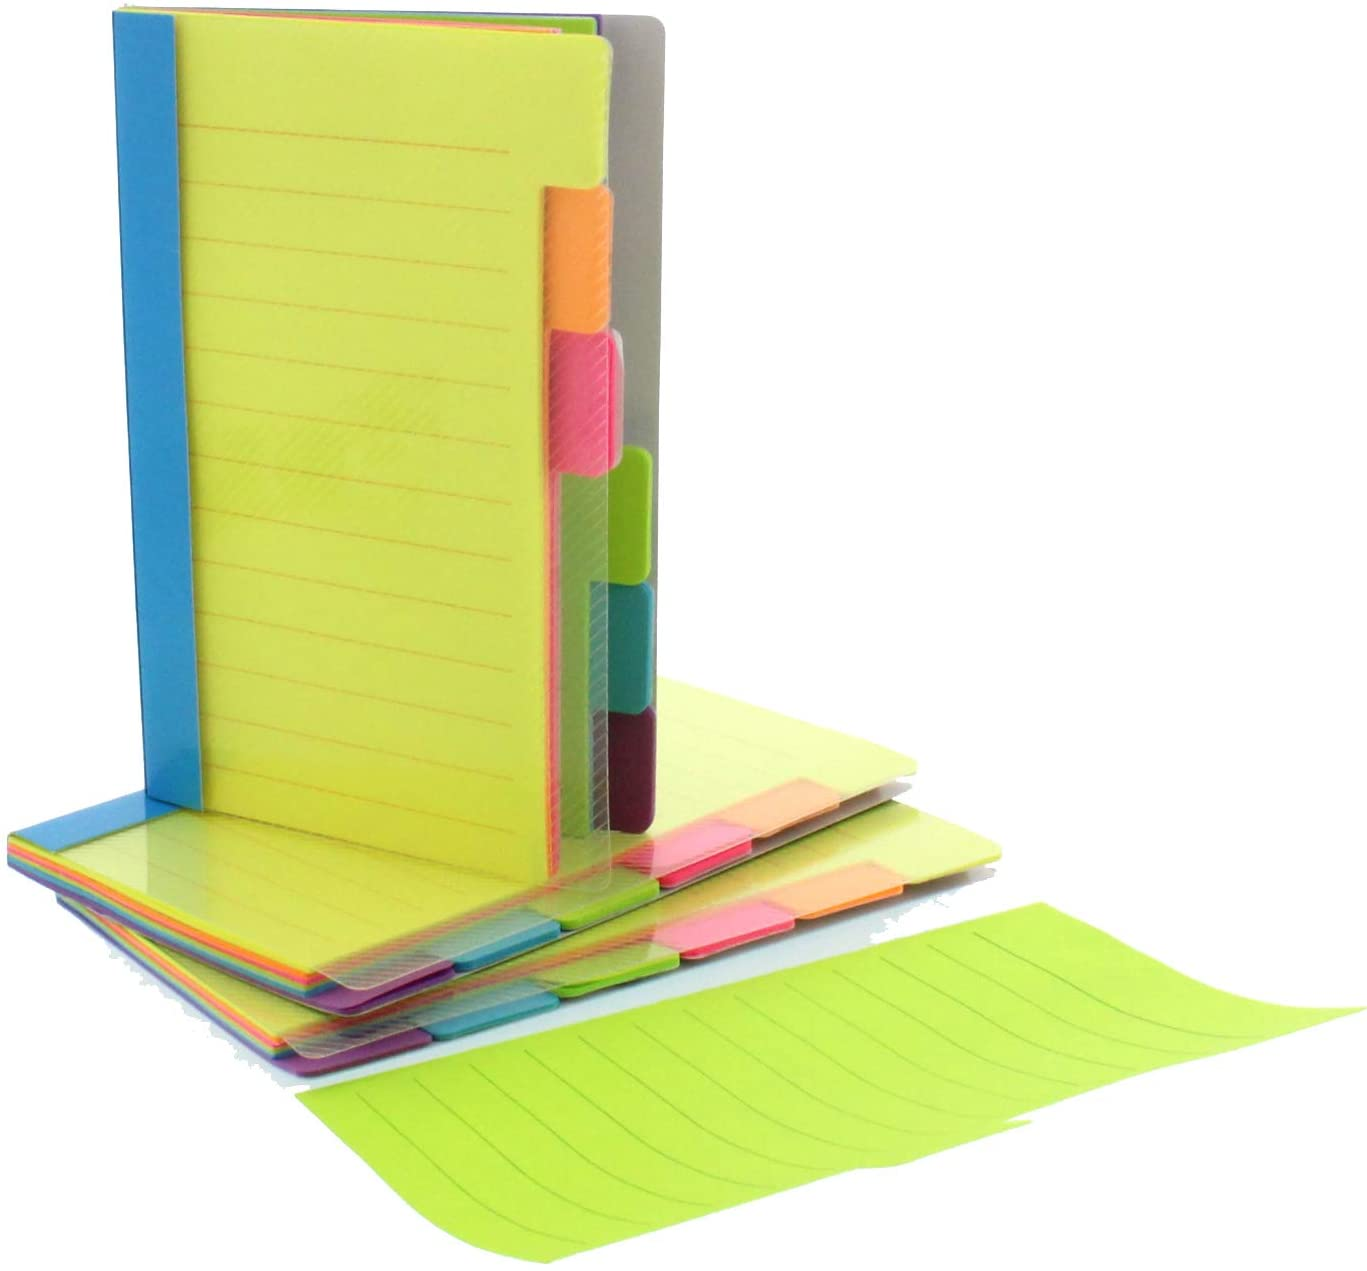 Redi-Tag Divider Sticky Notes, Tabbed Self-Stick Lined Note Pad, 60 Ruled Notes, 4 x 6 Inches, Assorted Neon Colors (29500) : Sticky Note Pads : Office Products